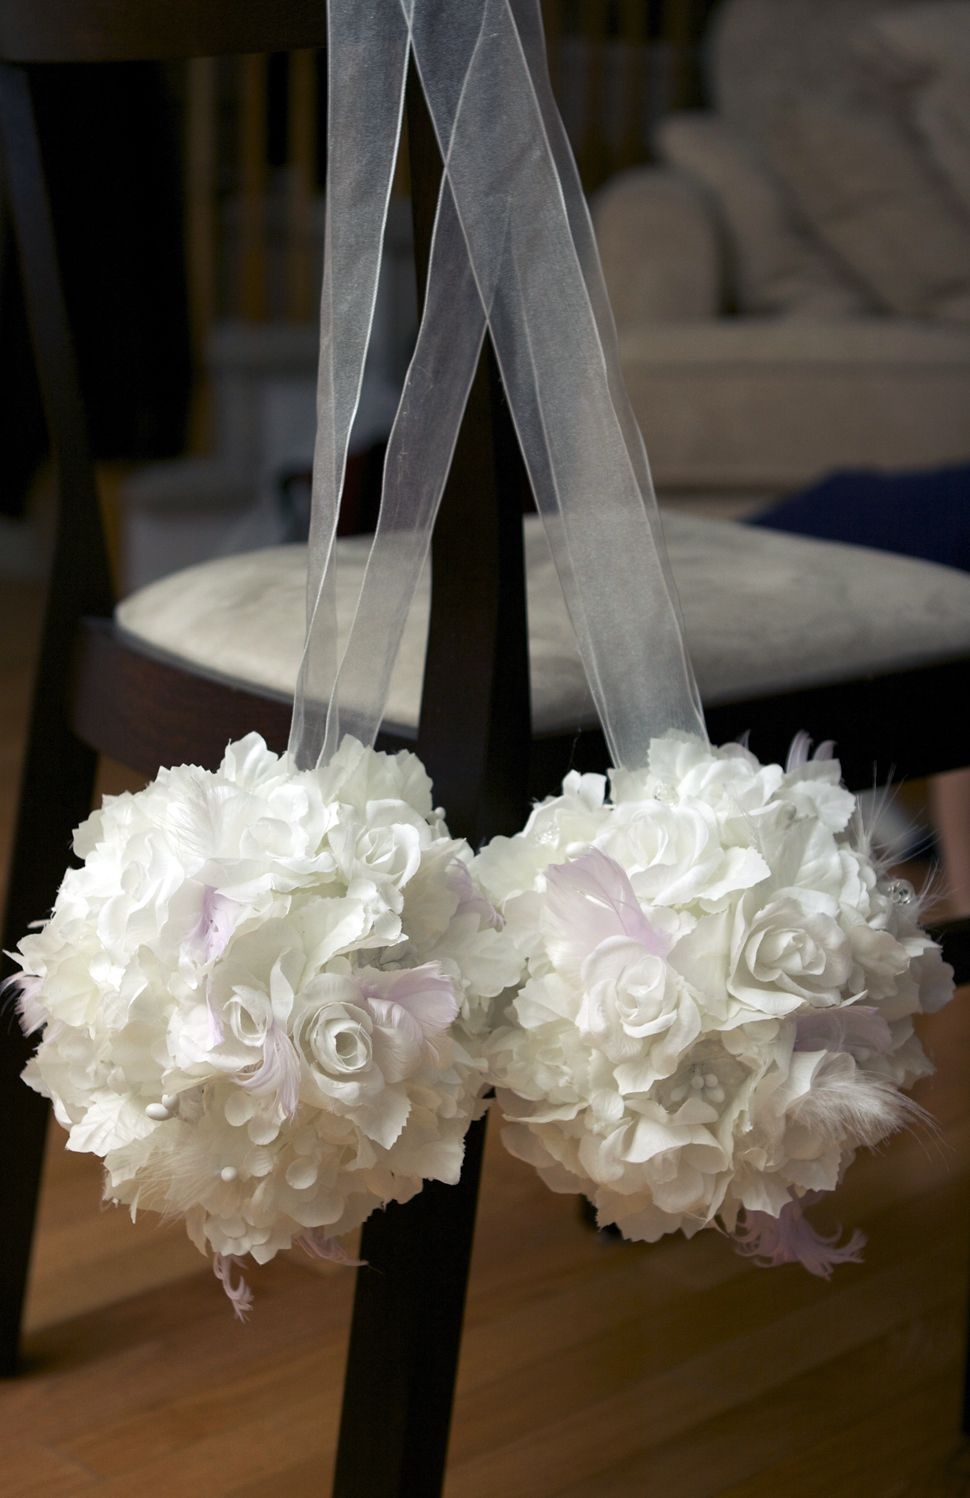 Diy kissing balls church decor wedding pinterest kissing ball